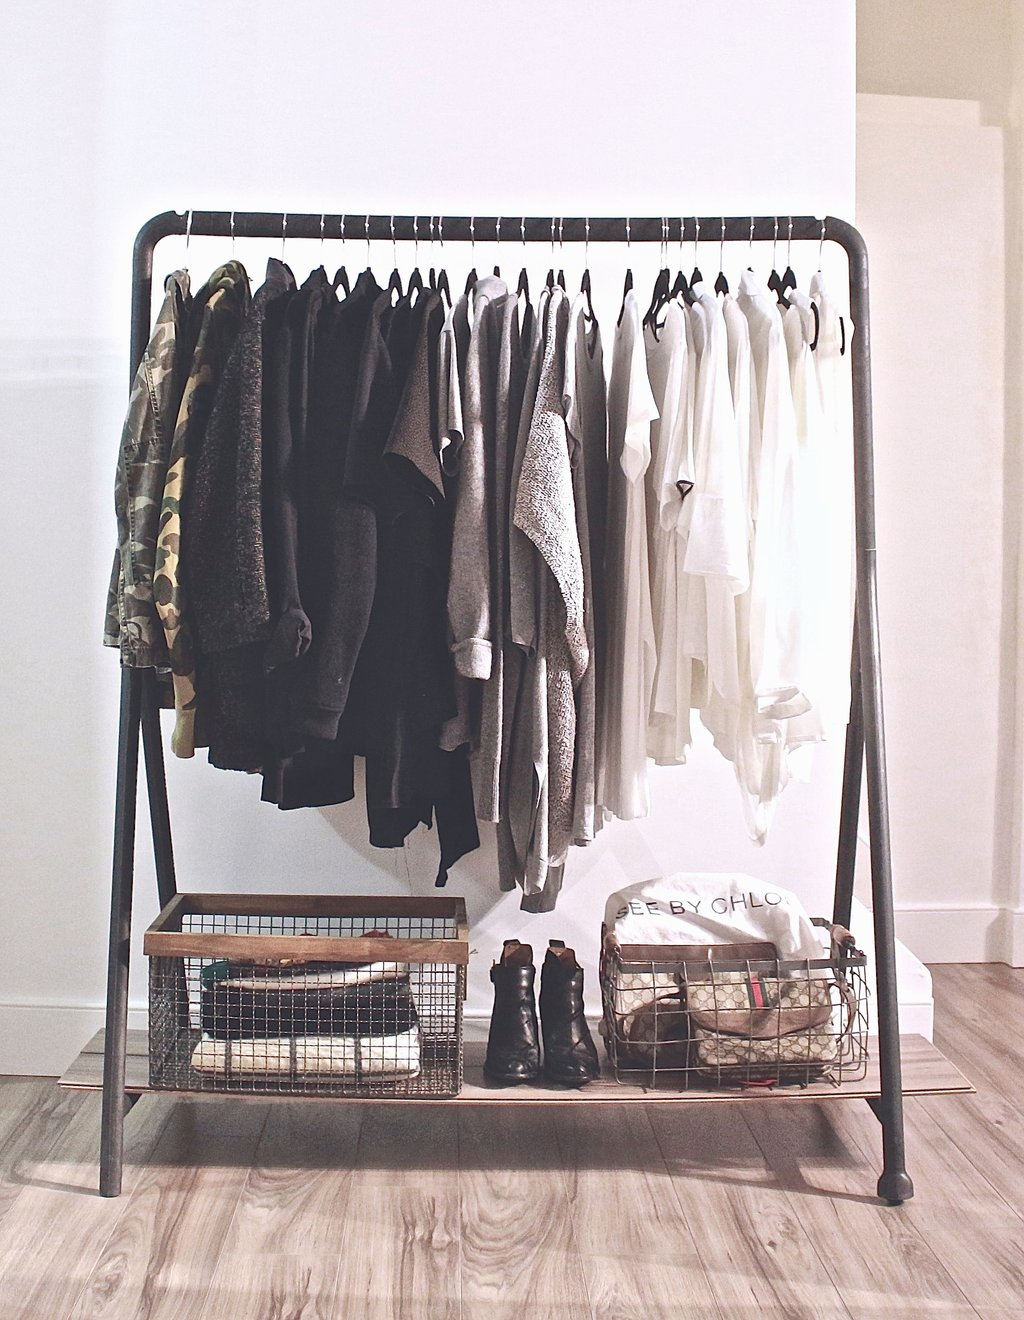 Remarkable Gallery Rack Garment Rack Cover Ideas For Wooden Clothes Rack